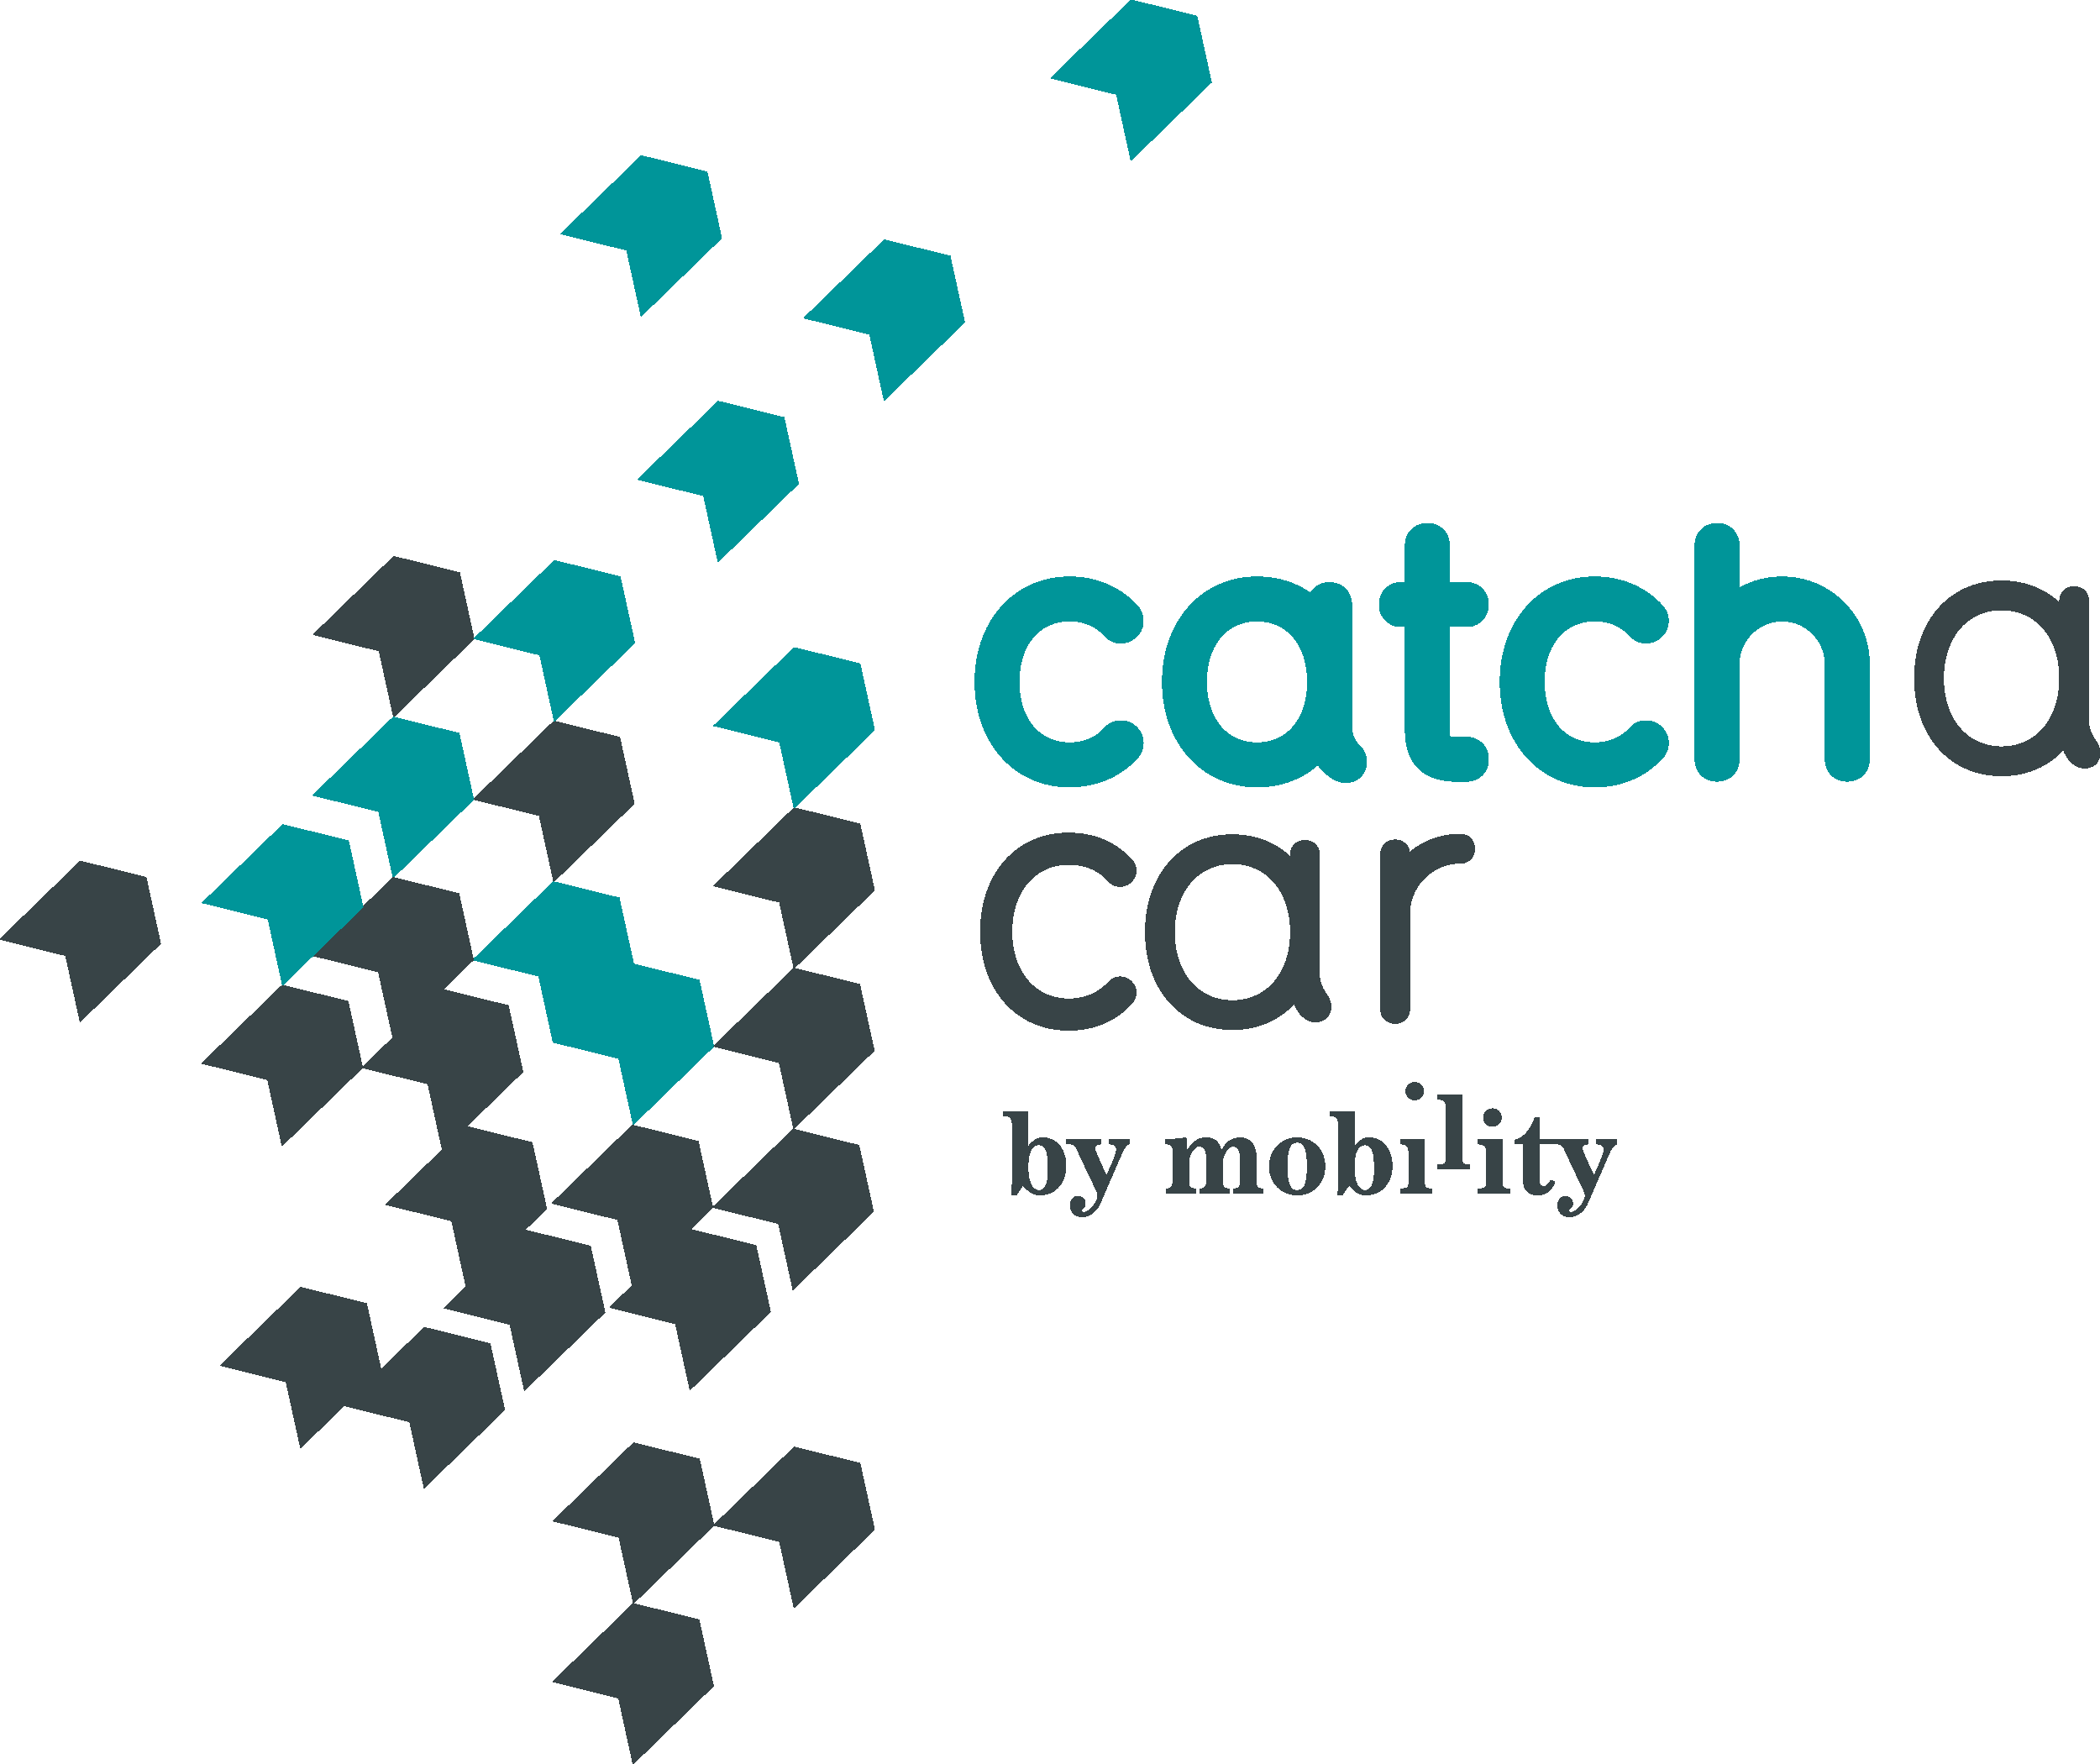 Catch a car